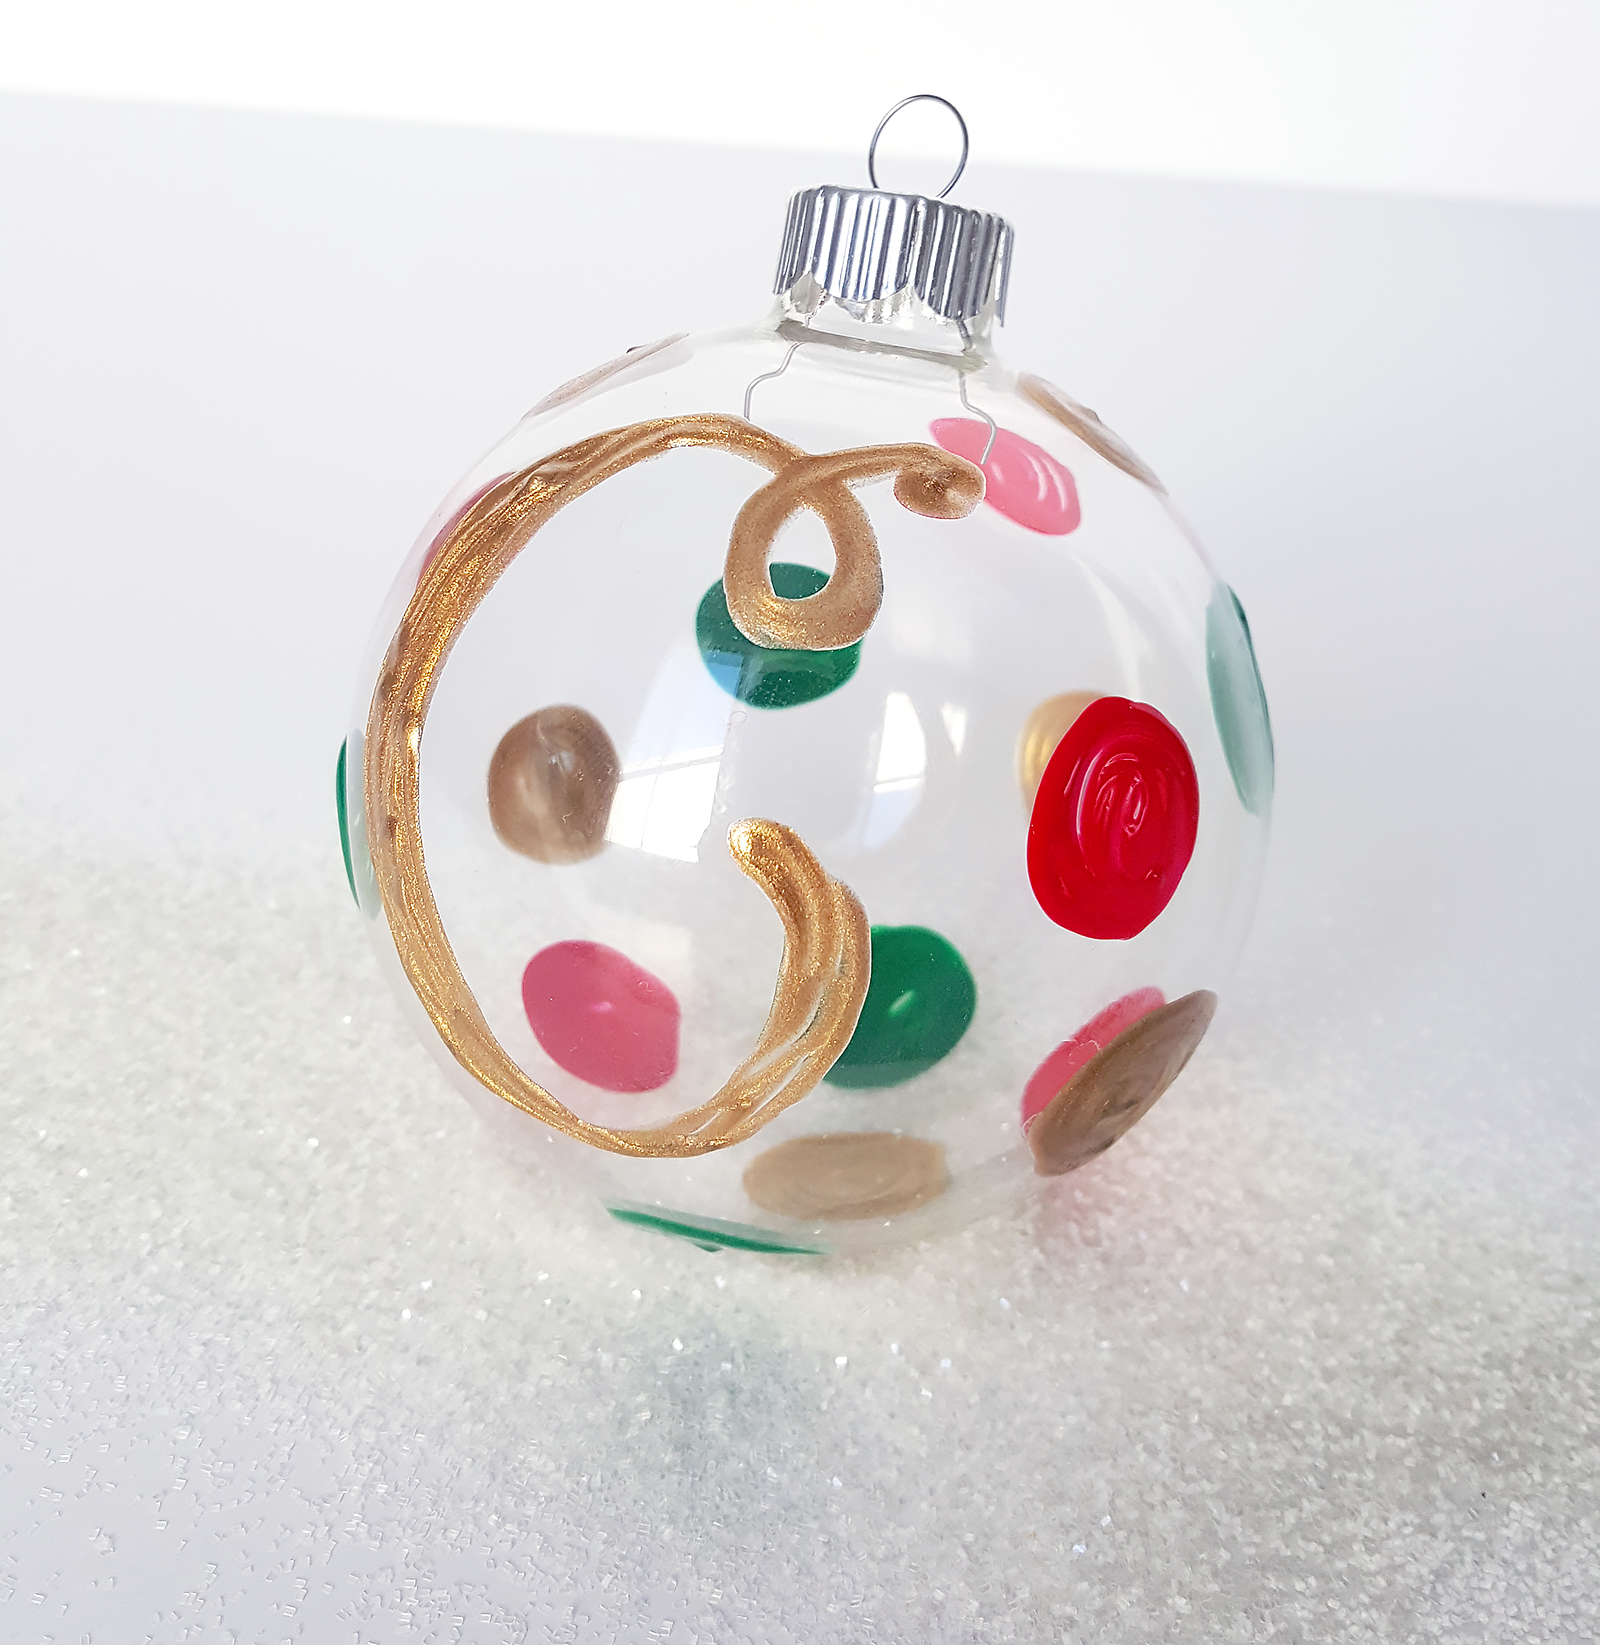 14 Ways to Make the Perfect Puffy Paint Ornament